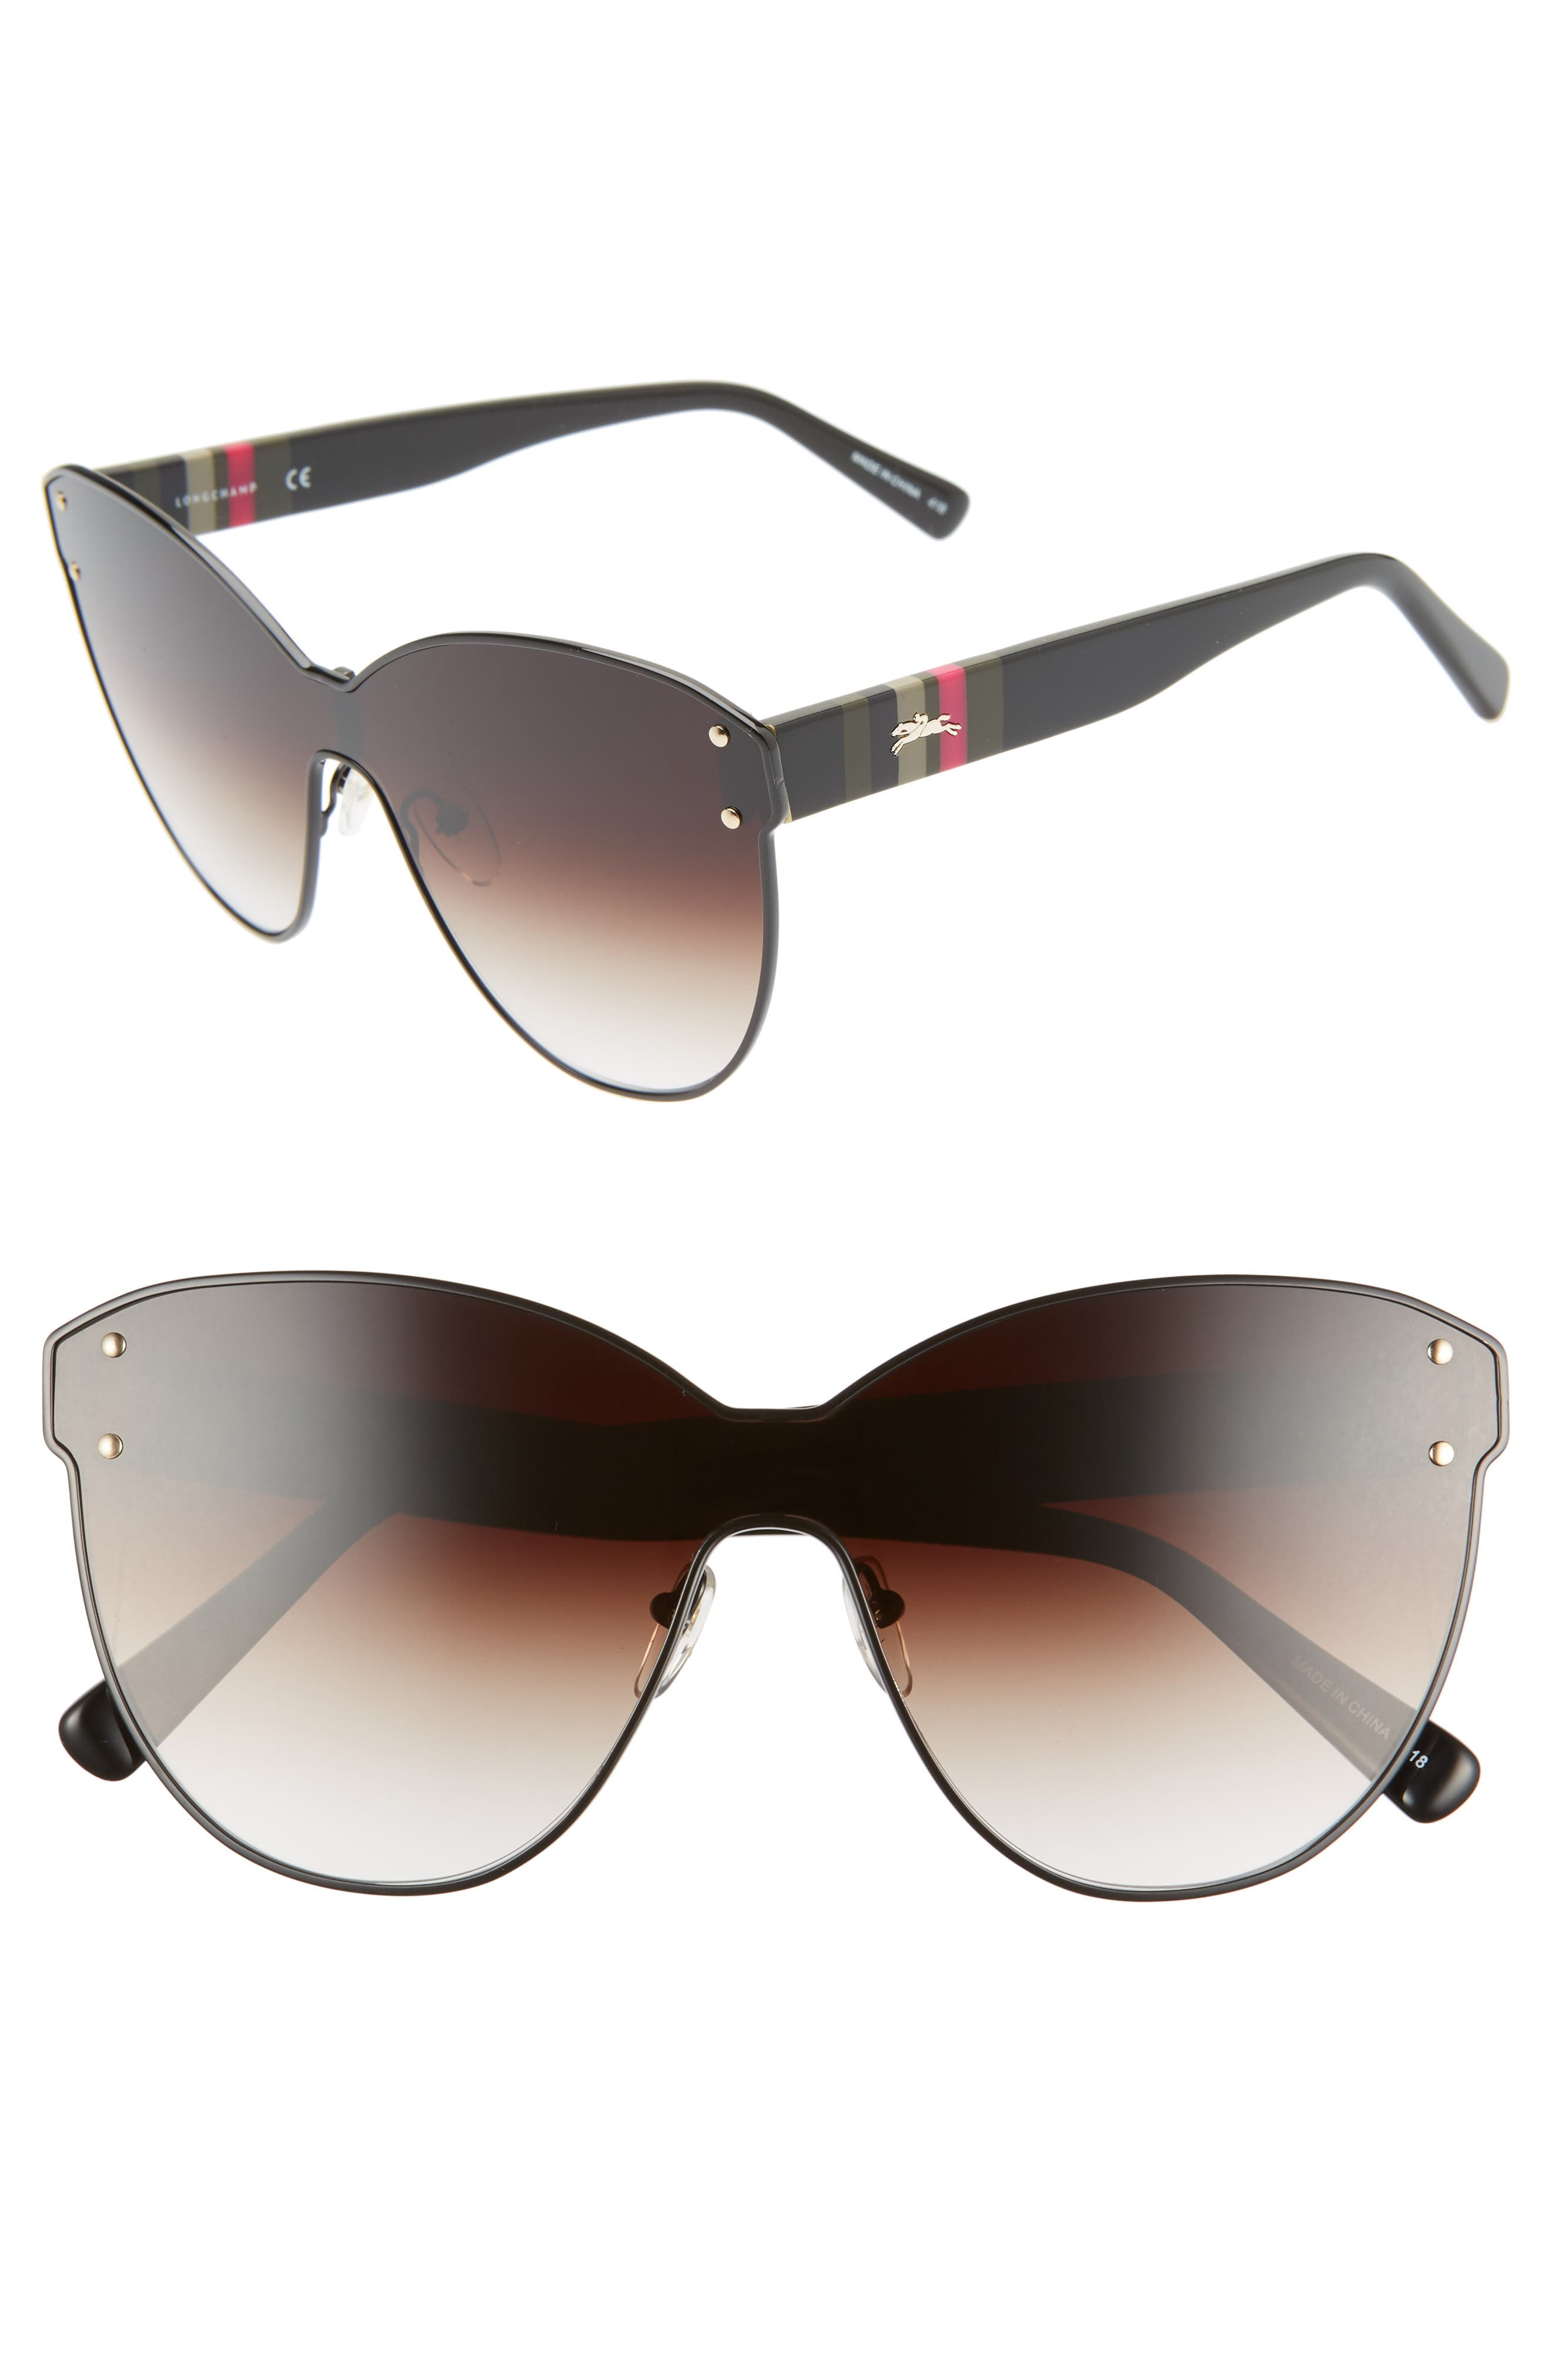 Longchamp Sunglasses Heritage Stripe 62mm Oversize Shield Sunglasses